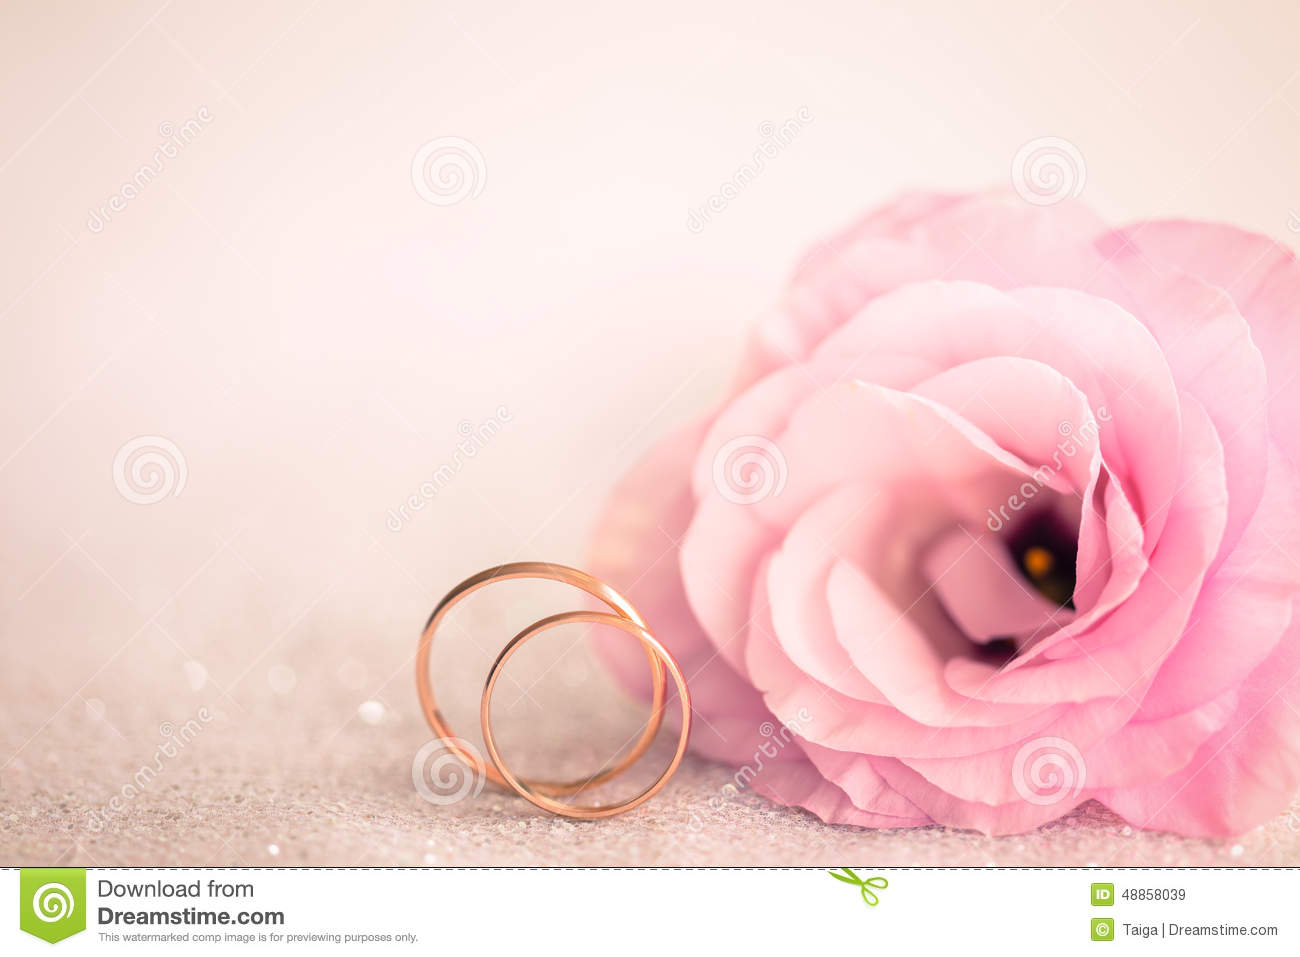 Gentle Pink Wedding Background With Rings And Flower Stock Image ...